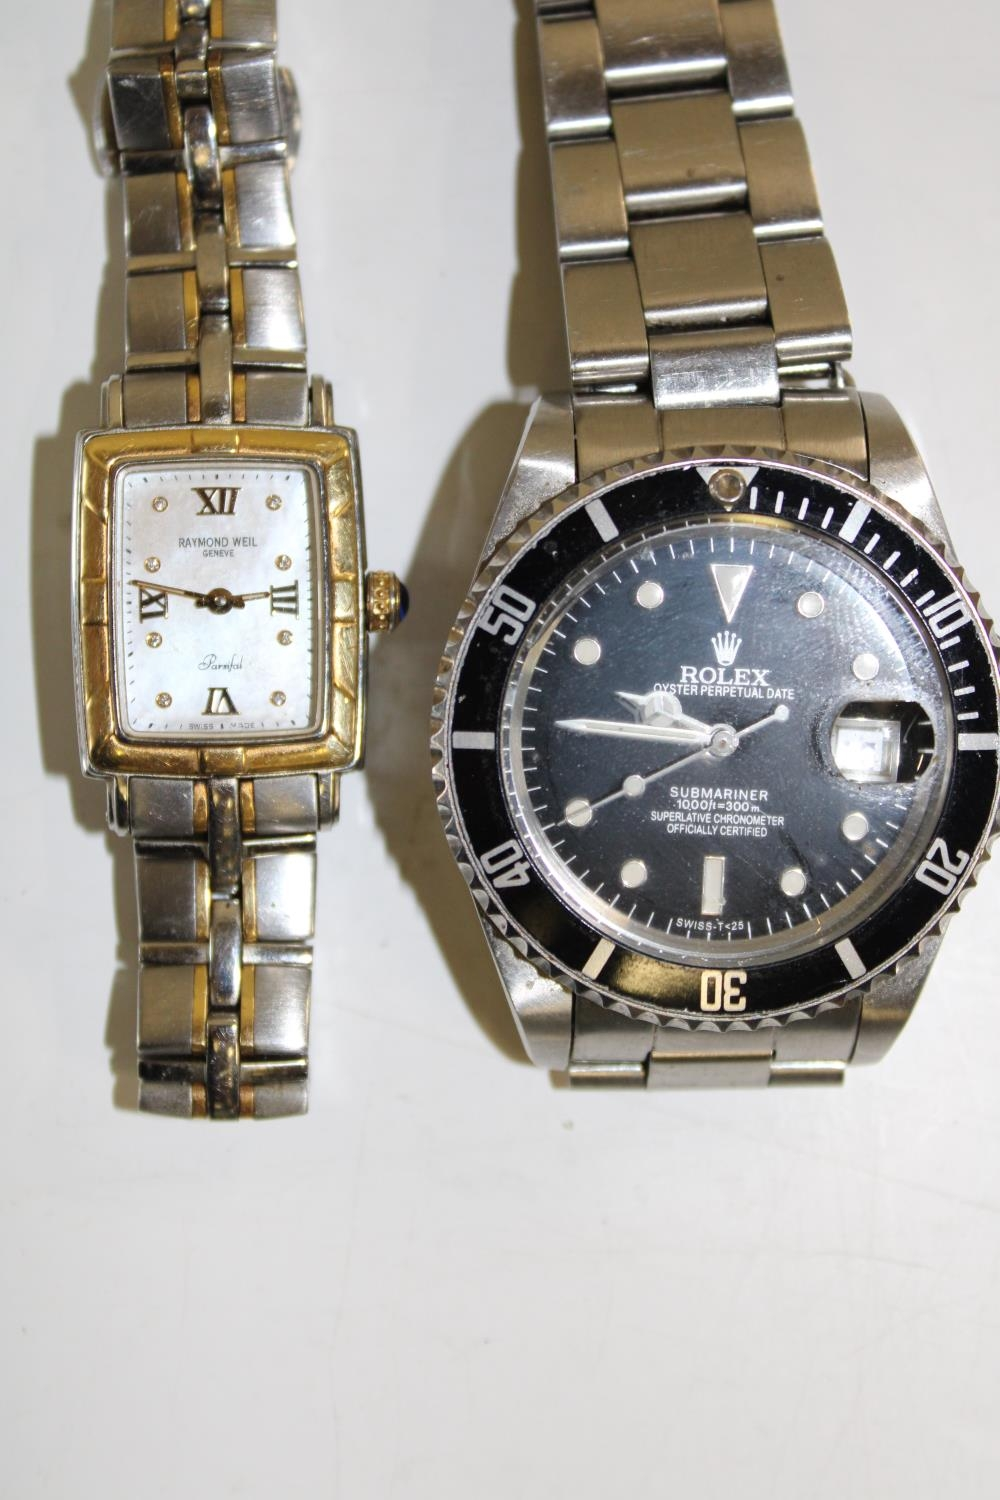 A Raymond Weil watch in GWO and one other